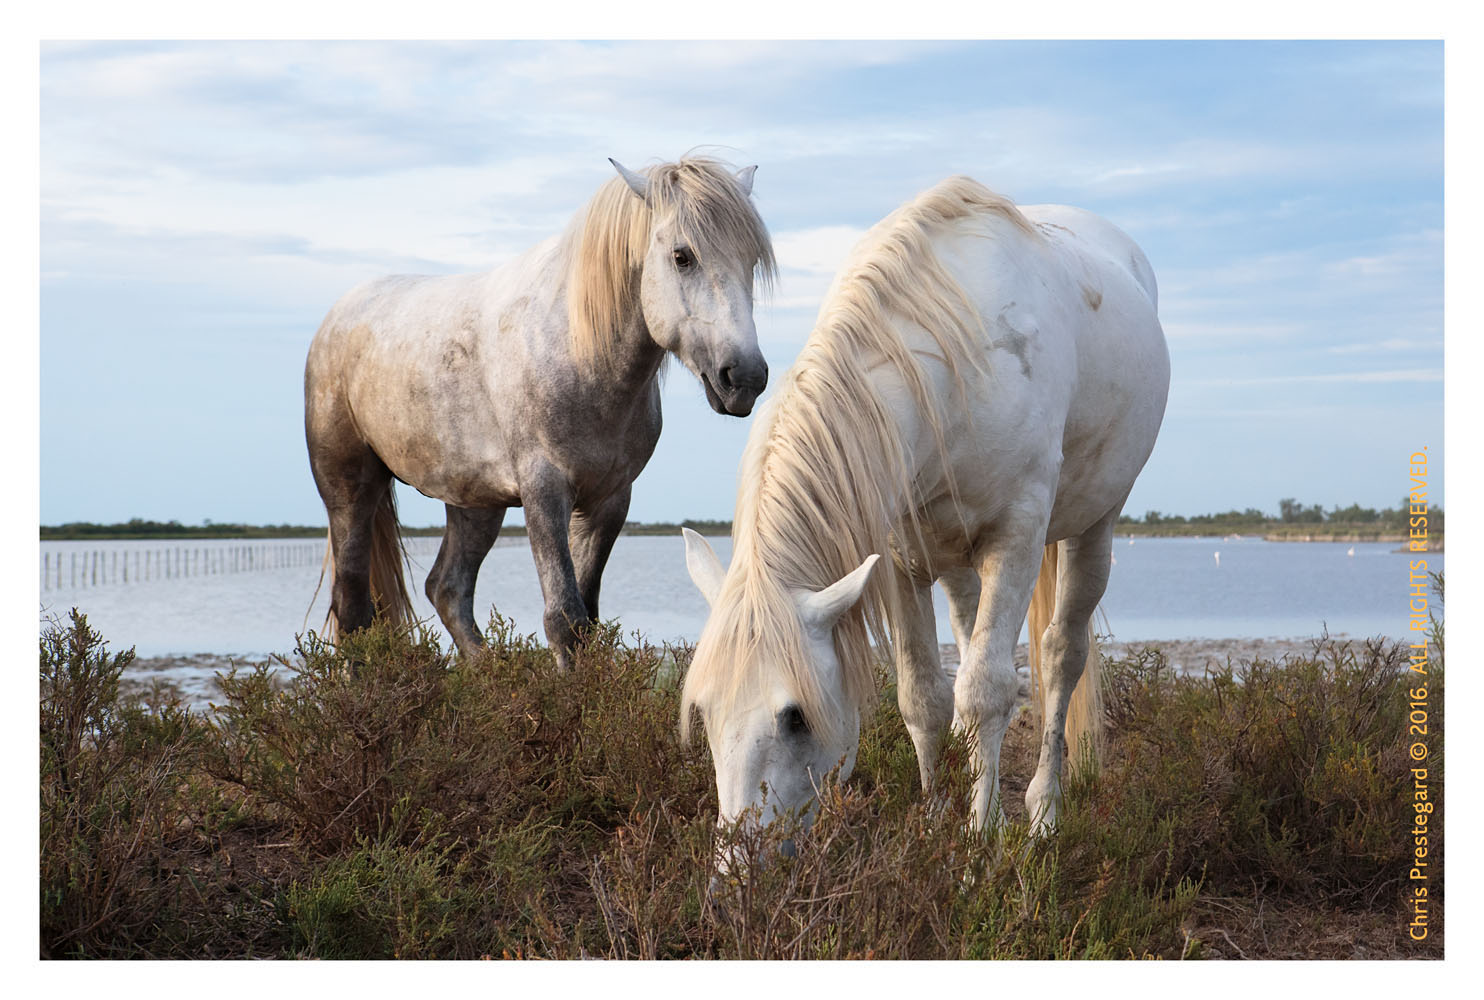 Camargue horses, St. Marie de la Mer, South of France, June 2016